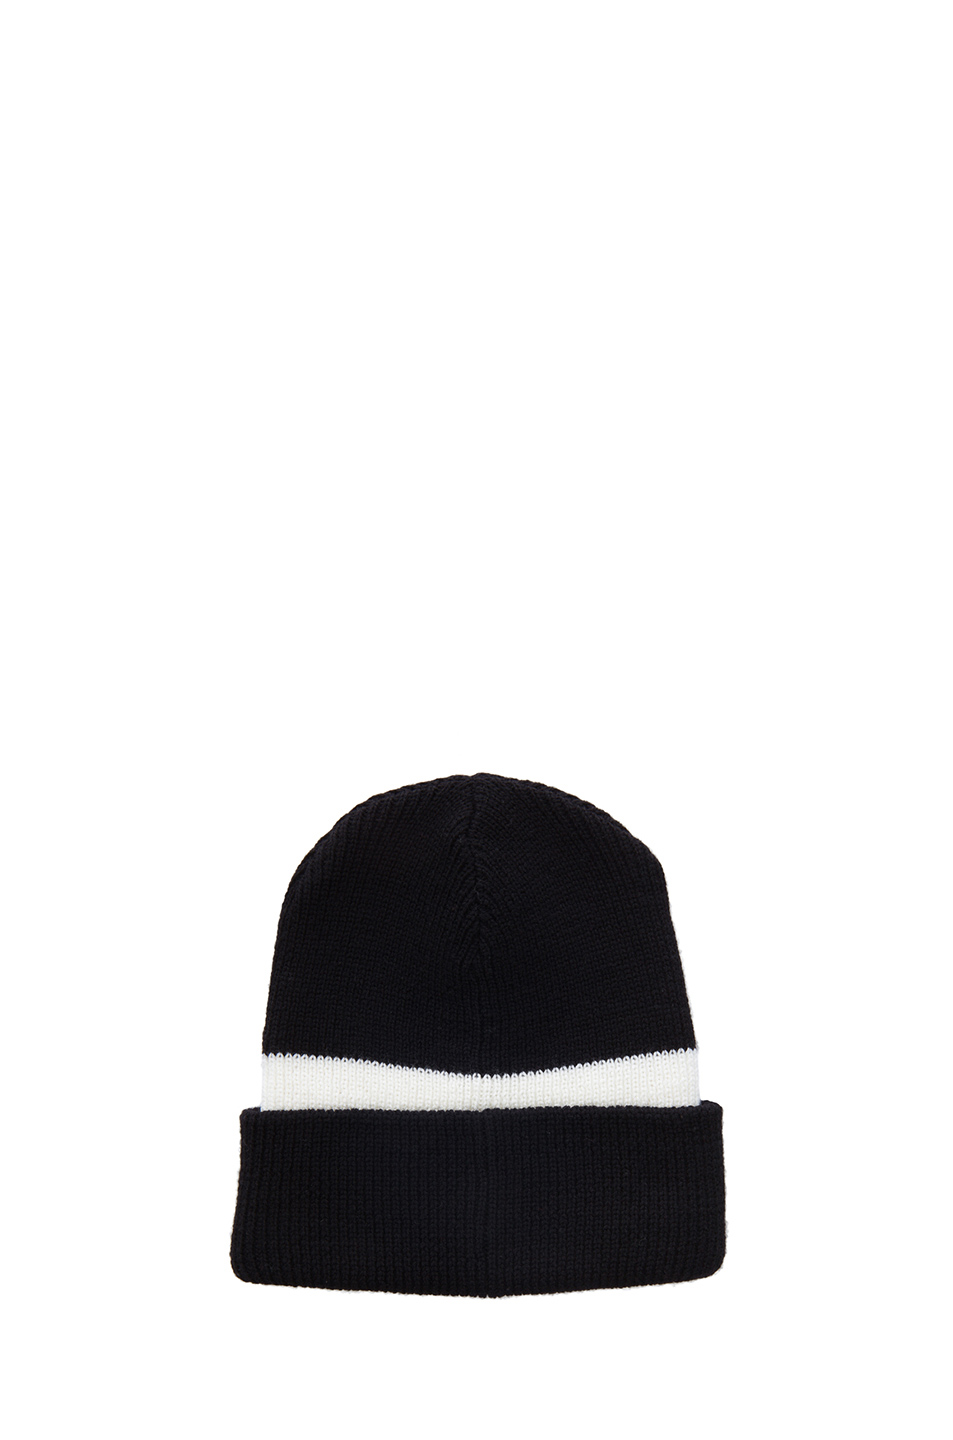 Opening Ceremony|x DKNY Logo Merino Wool Beanie in Black & White